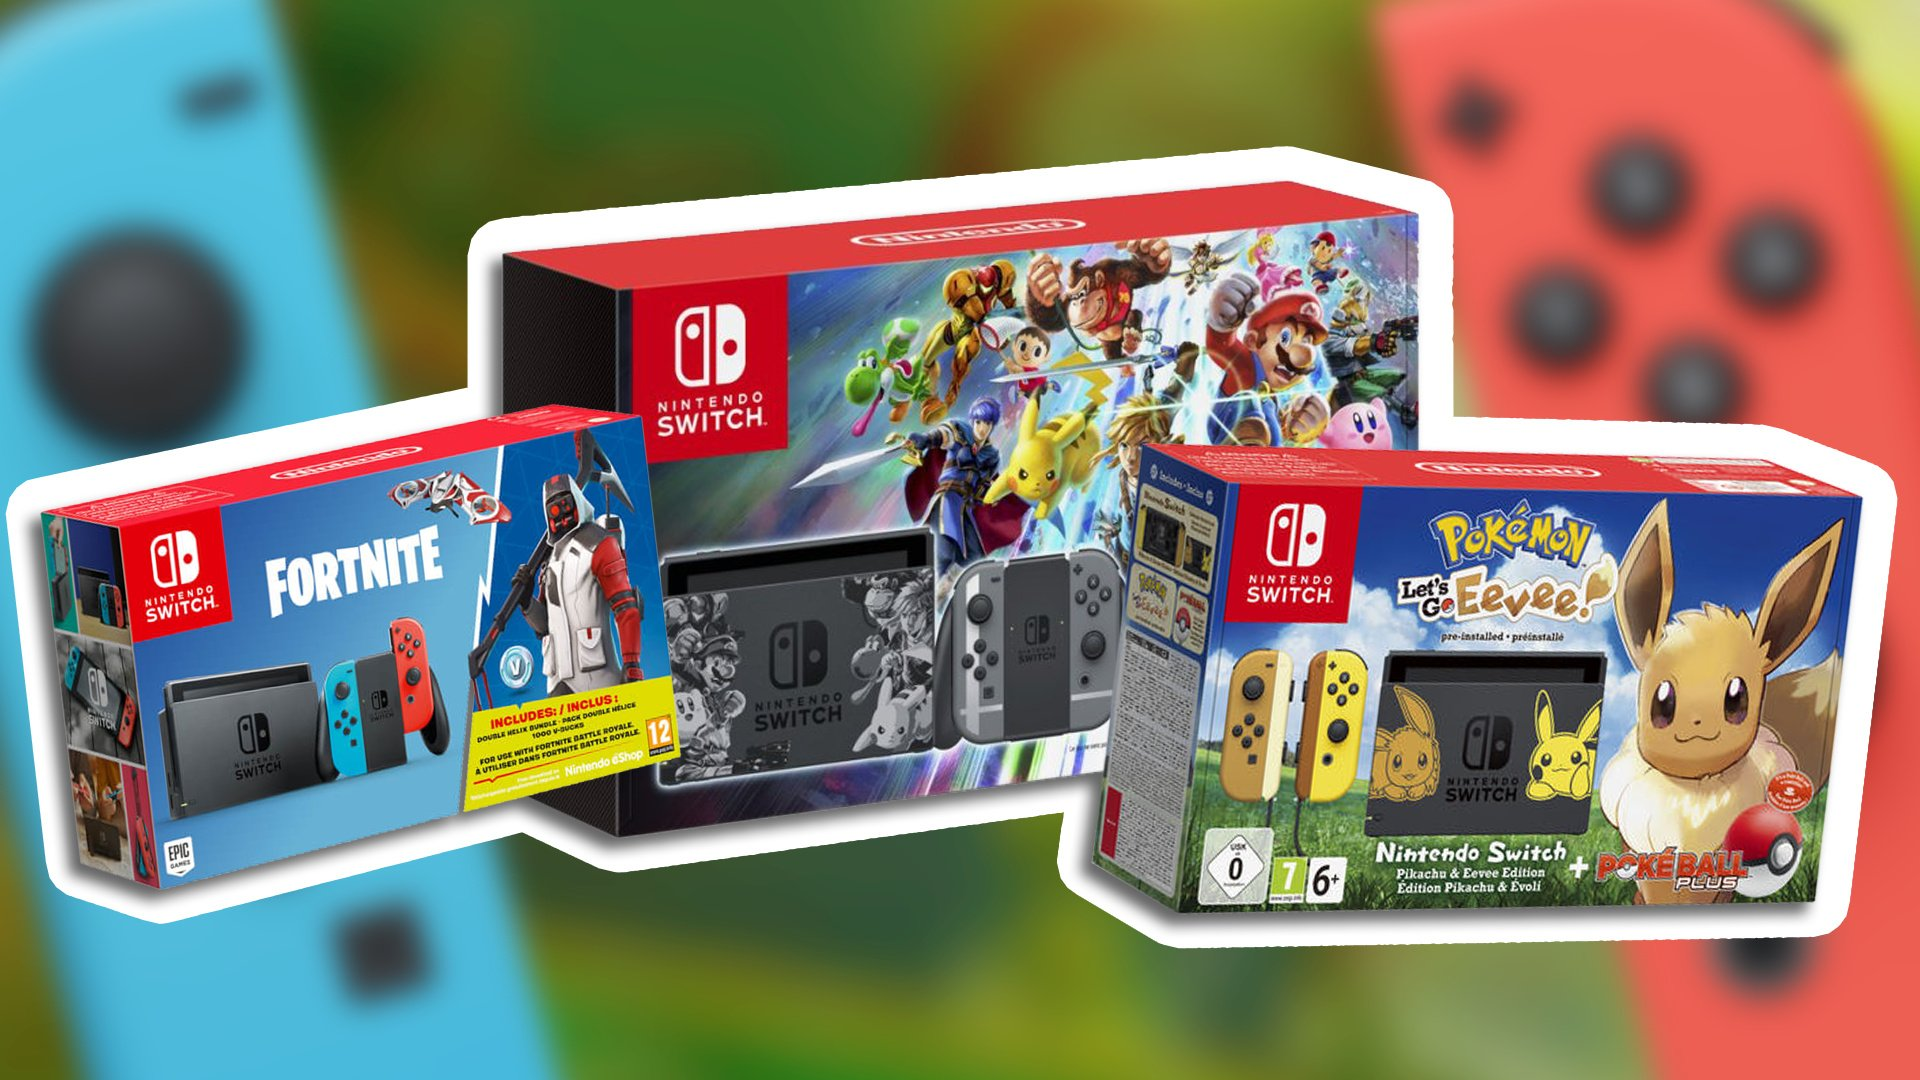 Best Nintendo Switch Hardware Bundle Deals For Christmas